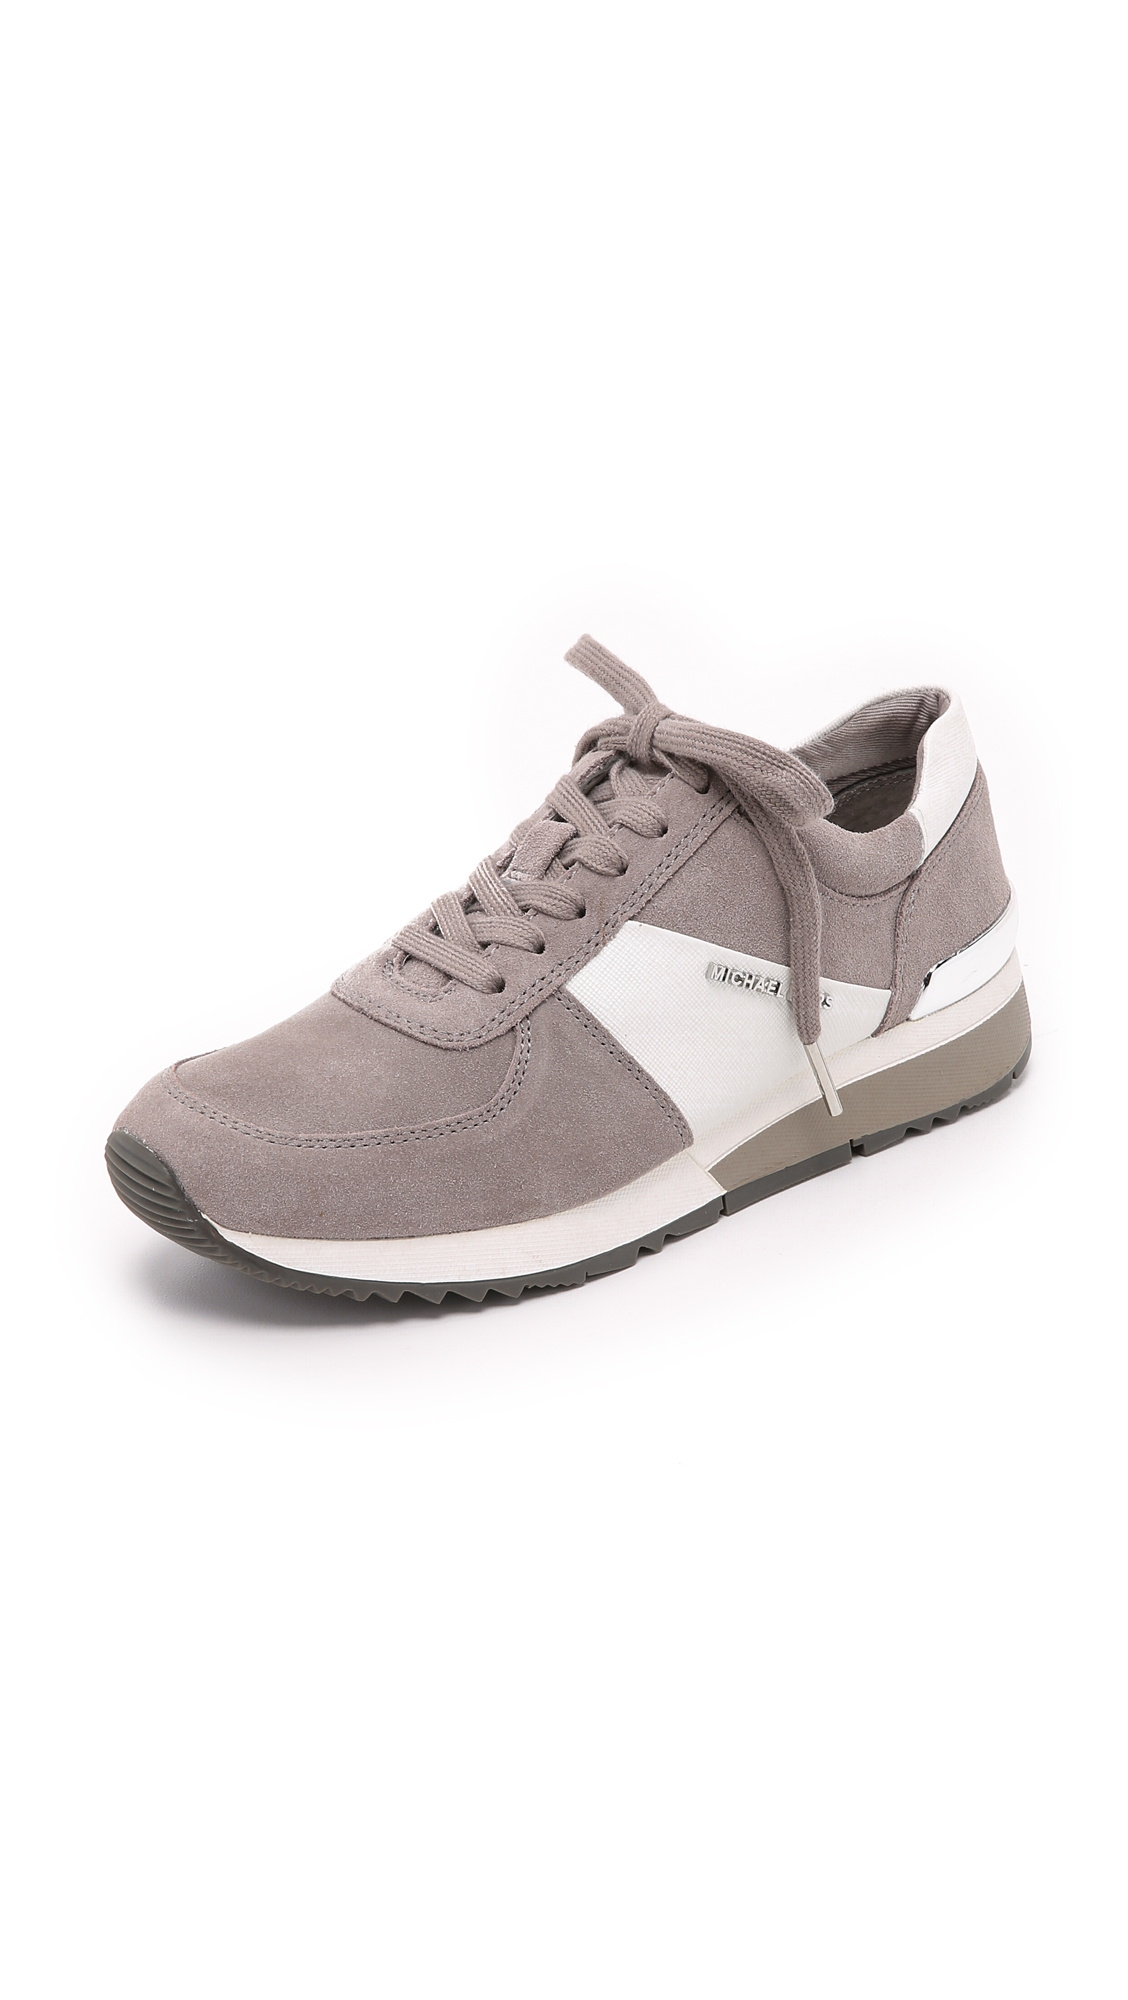 1446f5f04faf6 Lyst - MICHAEL Michael Kors Allie Trainers - Pearl grey in White